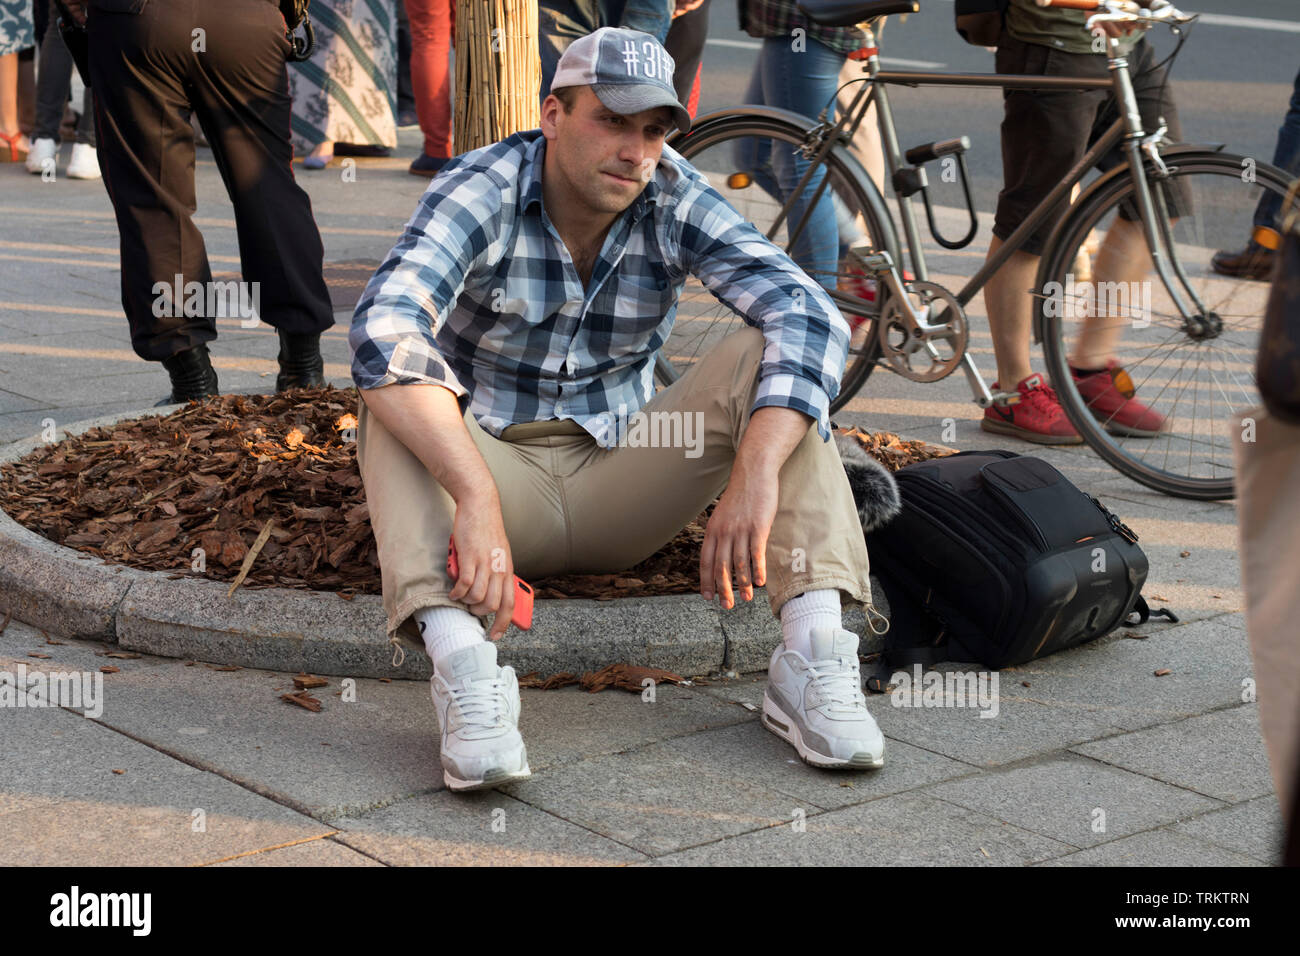 Moscow, RUSSIA - June 7, 2019: Protest held in Moscow over arrest of investigative journalist Ivan Golunov. Man sitting on the lawn - Stock Image